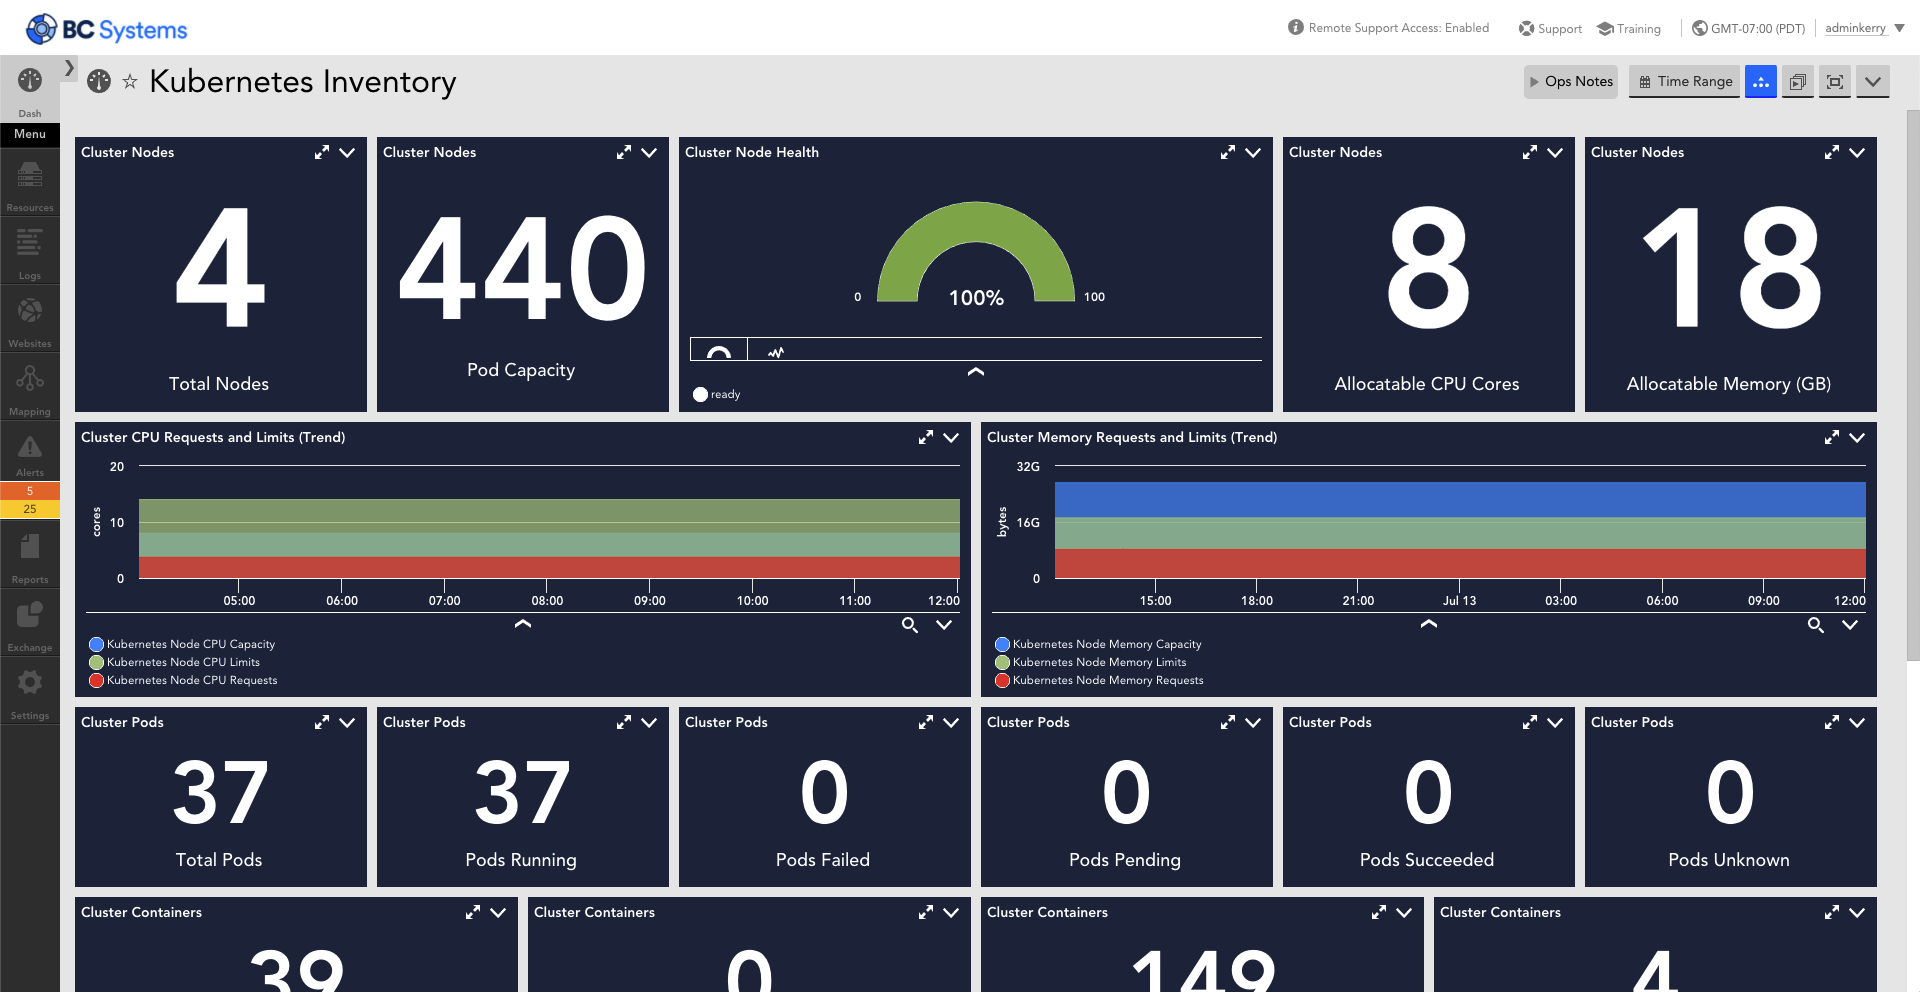 http://This%20dashboard%20provides%20an%20inventory%20of%20Kubernetes%20using%20the%20Kubernetes%20cluster%20API.